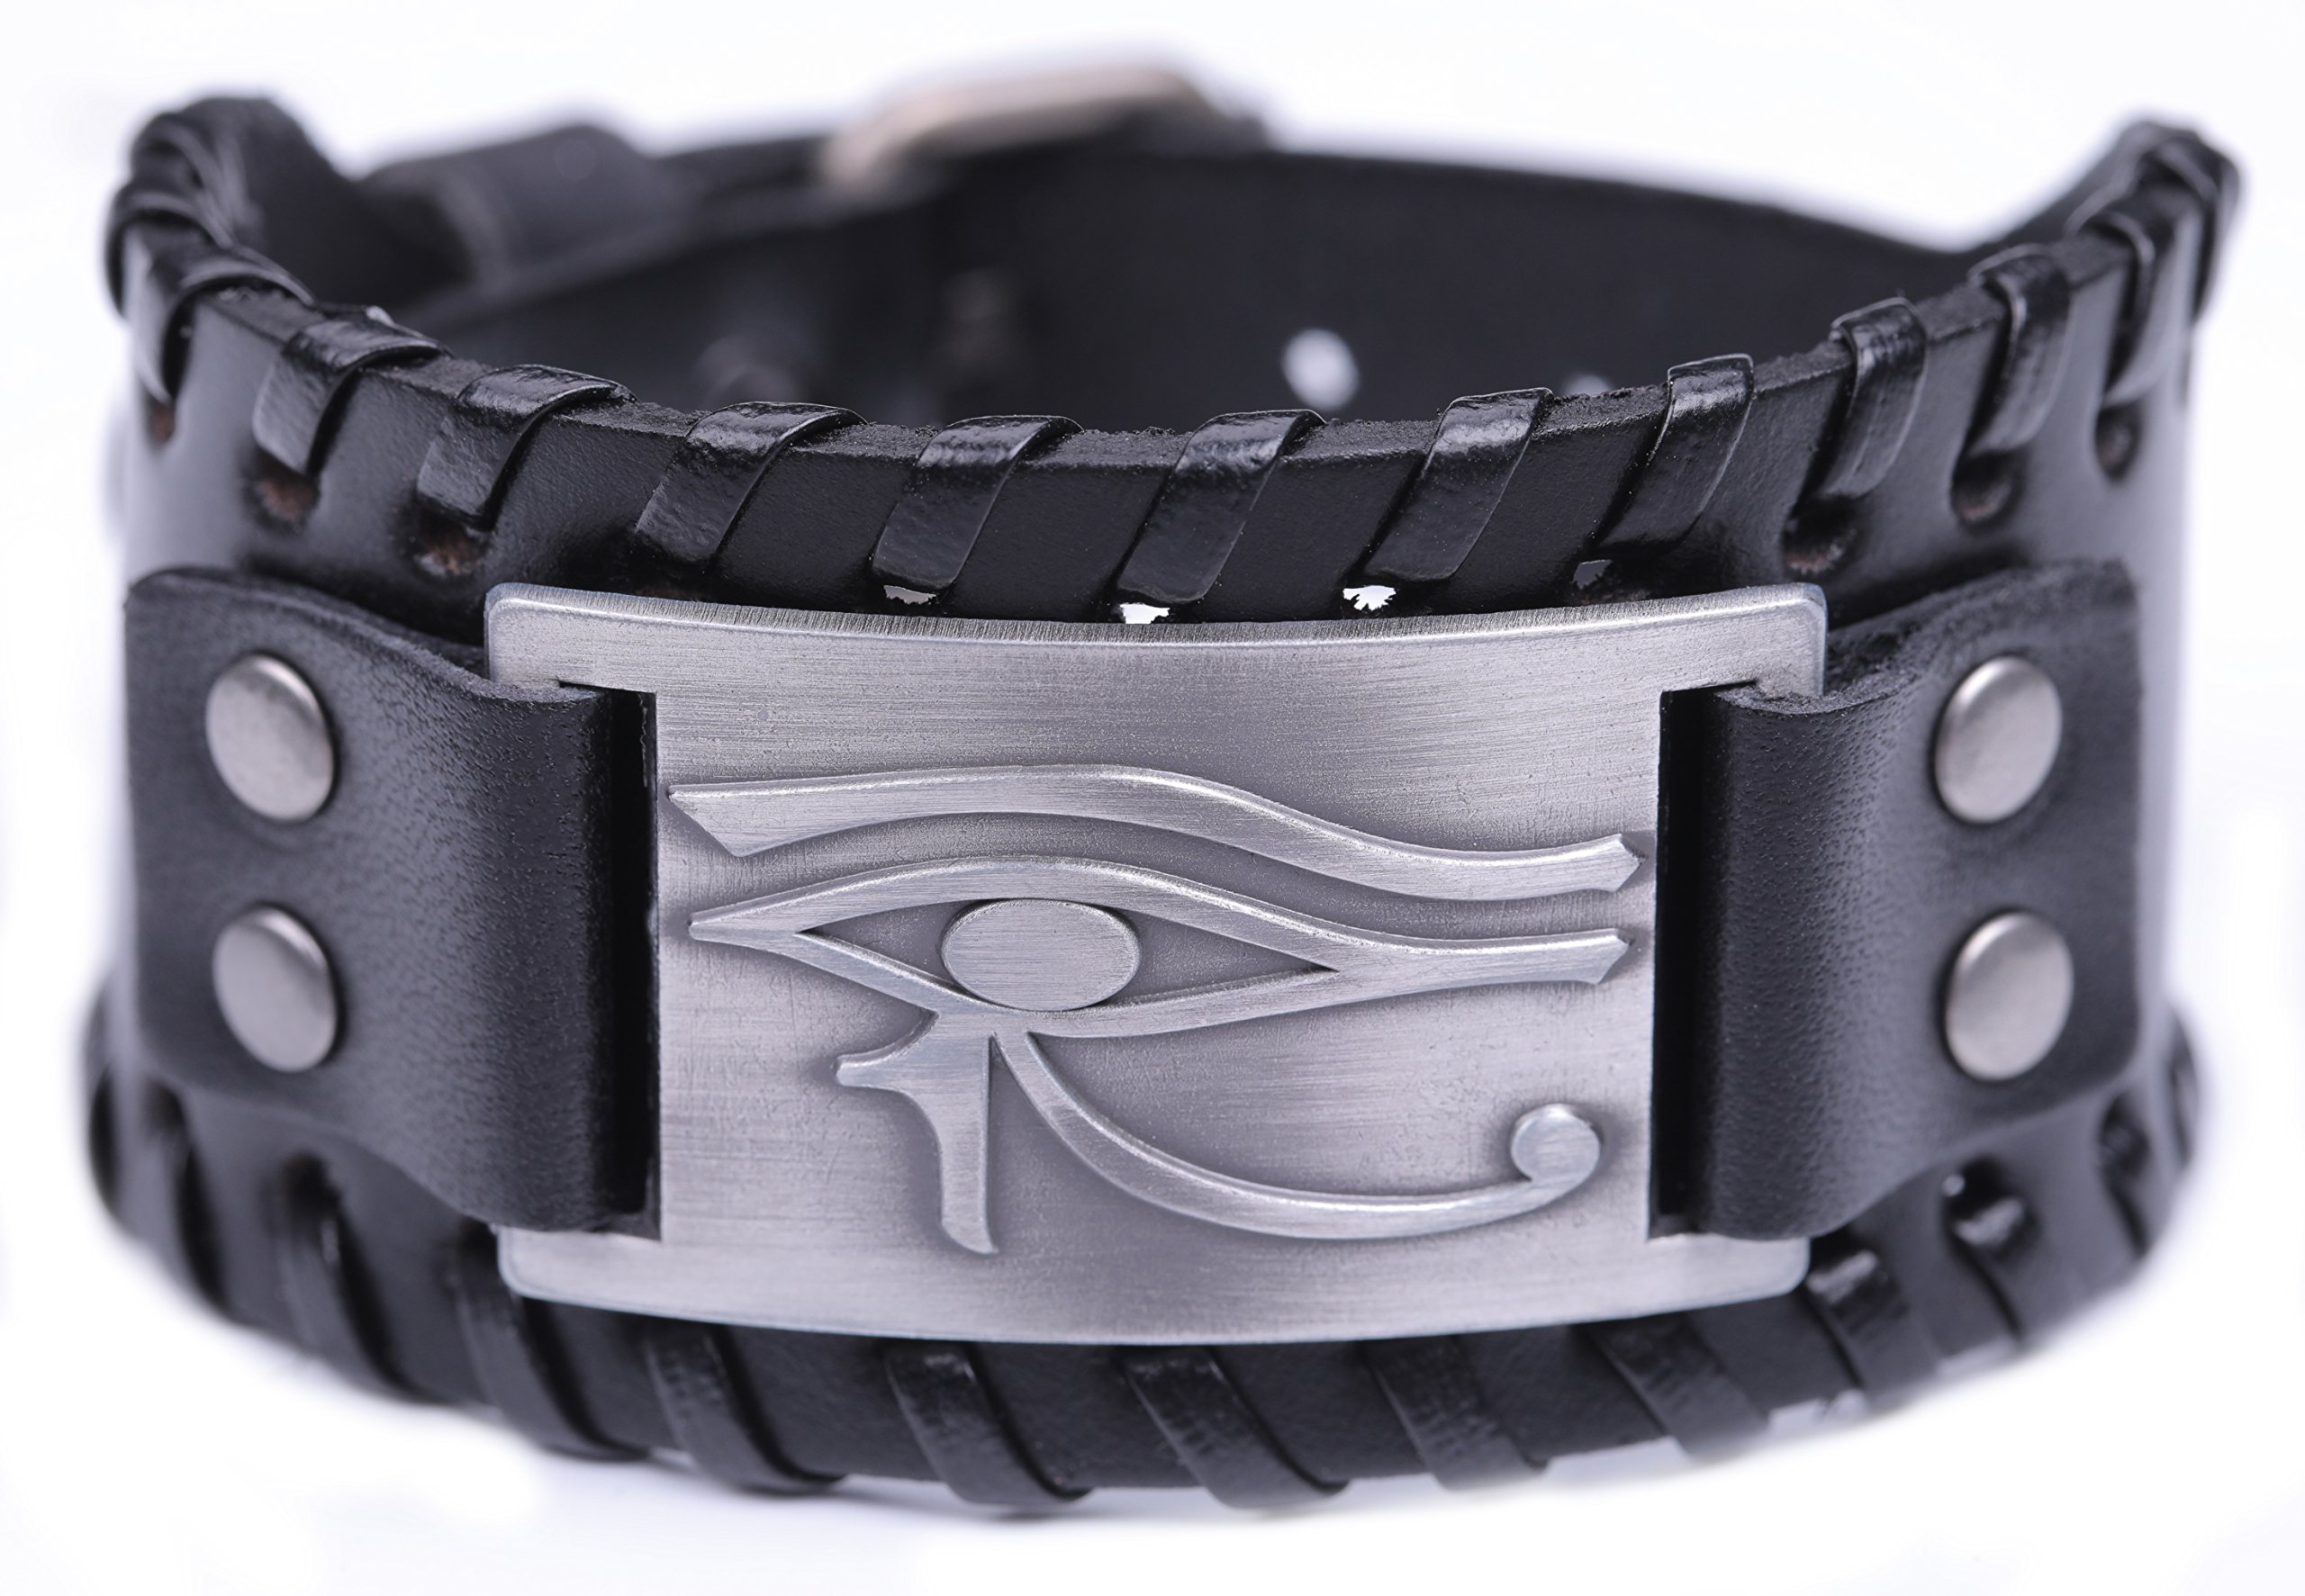 VASSAGO Ancient Egyptian Pagan Evil Eye of Horus Talisman New Style Adjustable Metal Leather Bracelet for men women (Black Leather, Antique Silver)